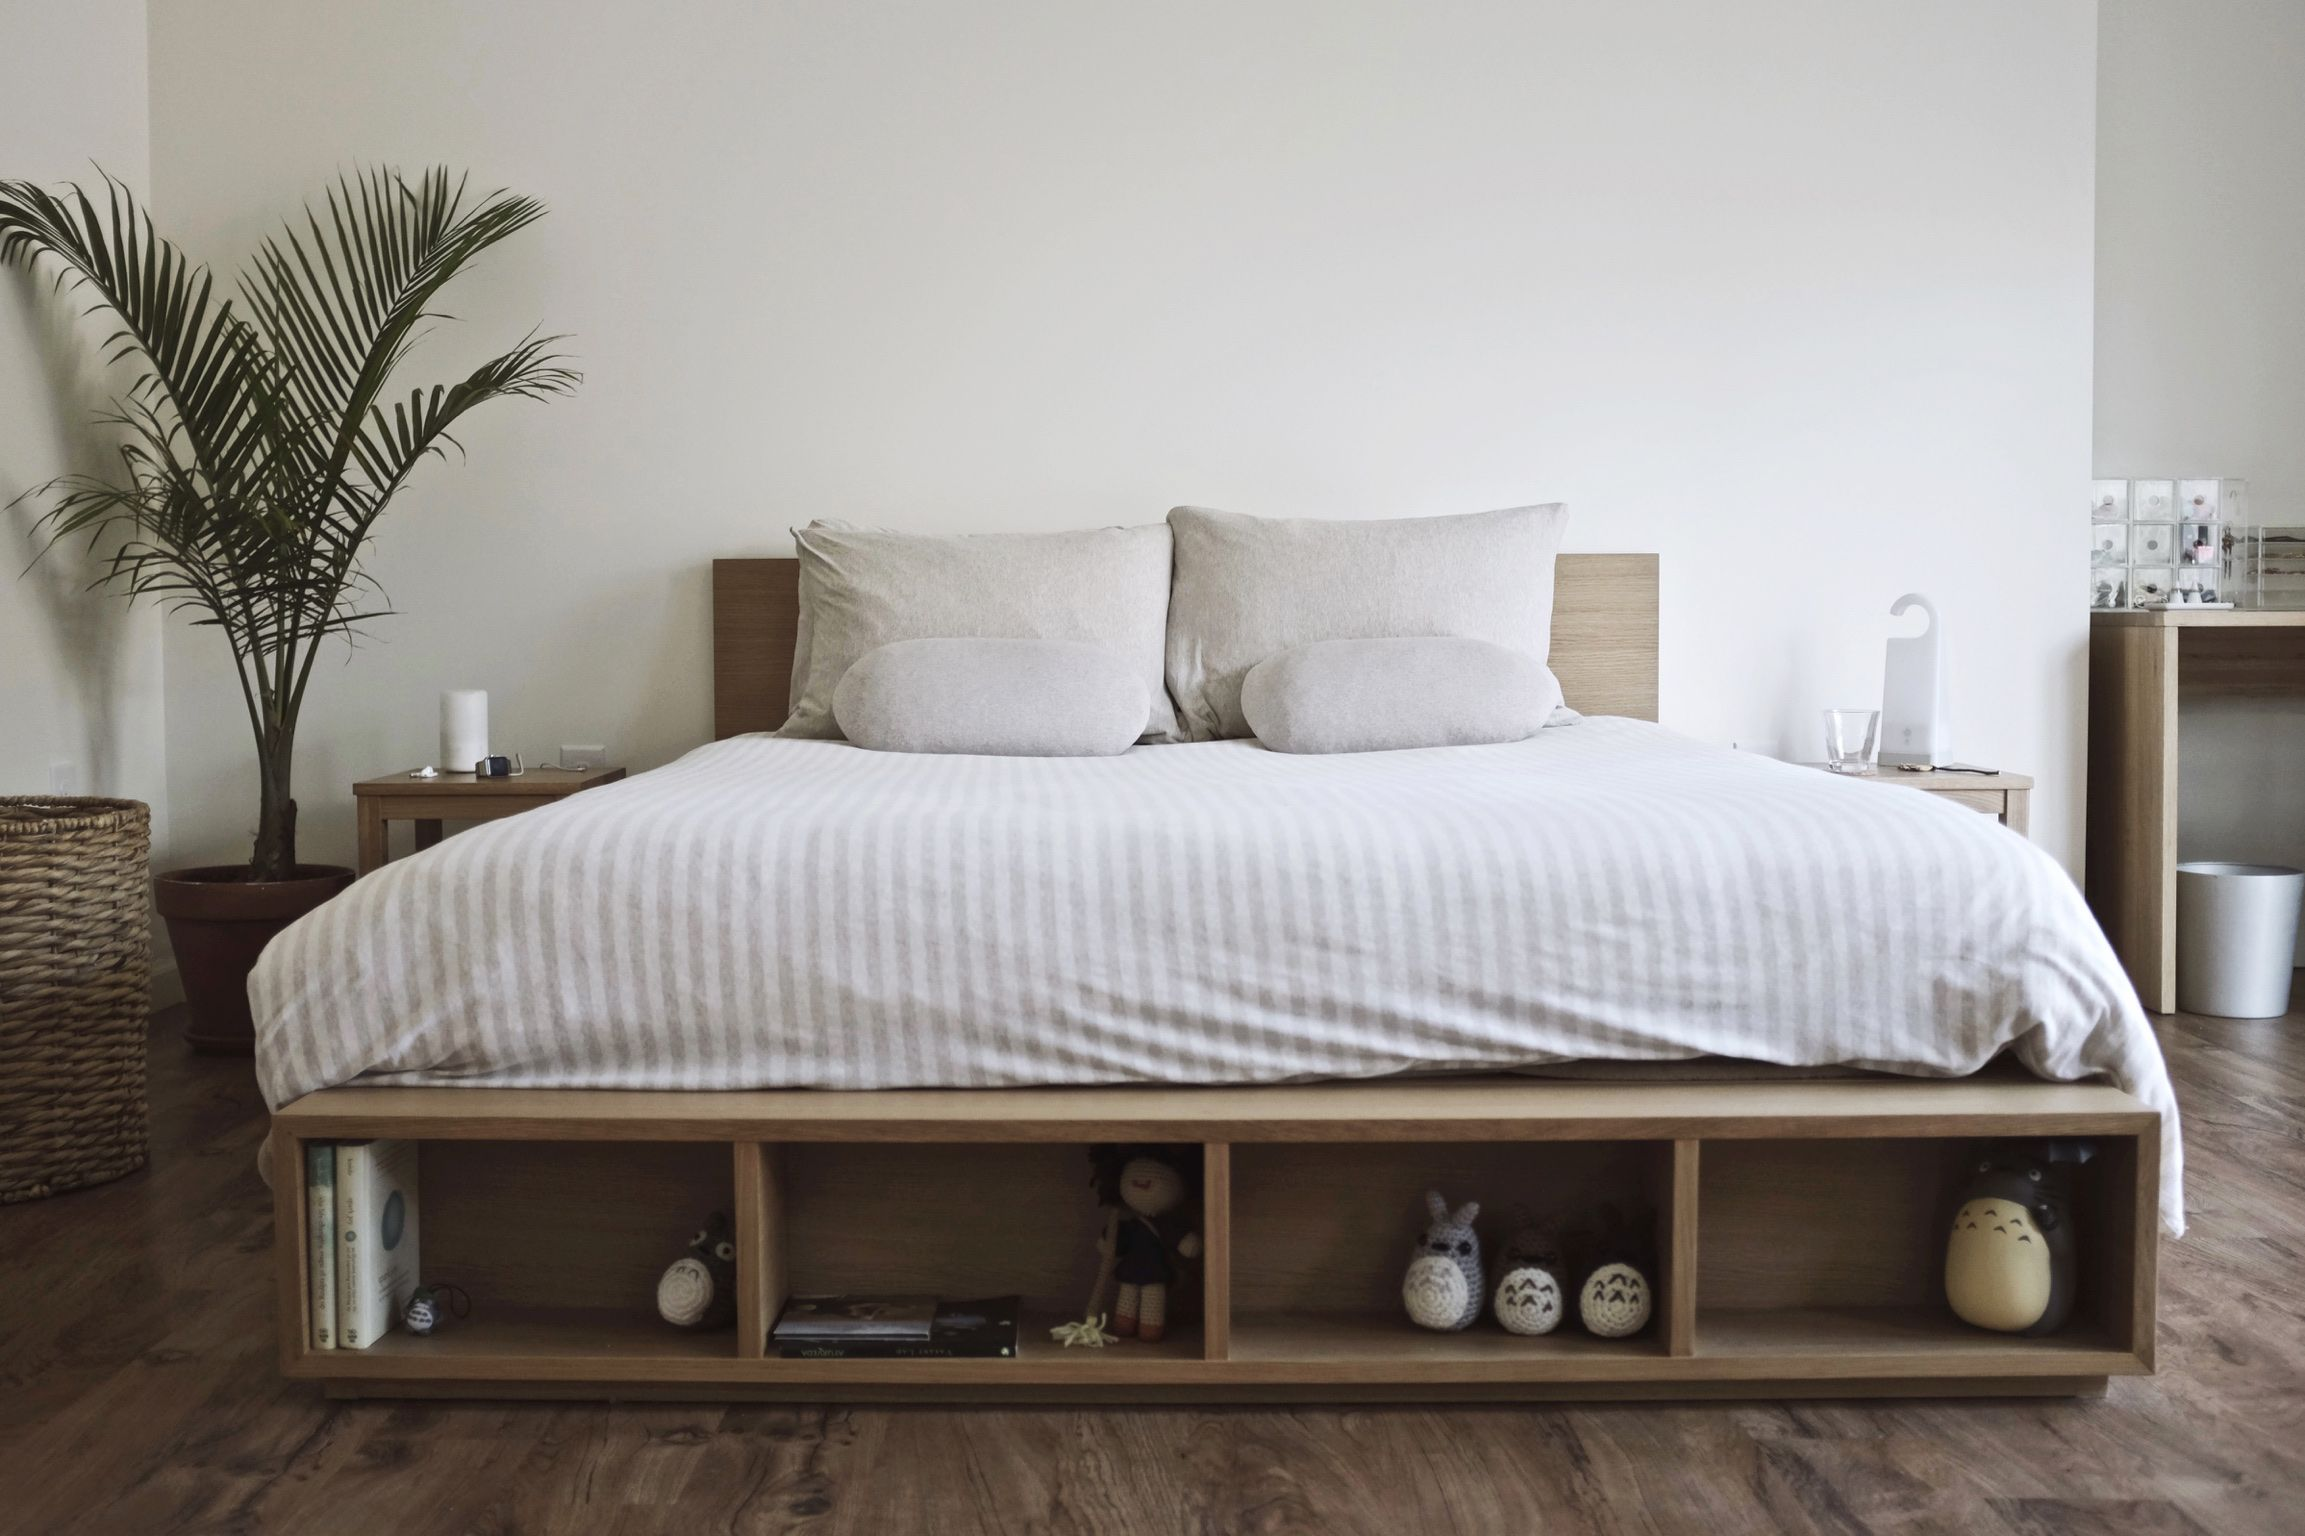 We Re Big Fans Of Muji S Oak Storage Bed Their Pocket Coil Spring